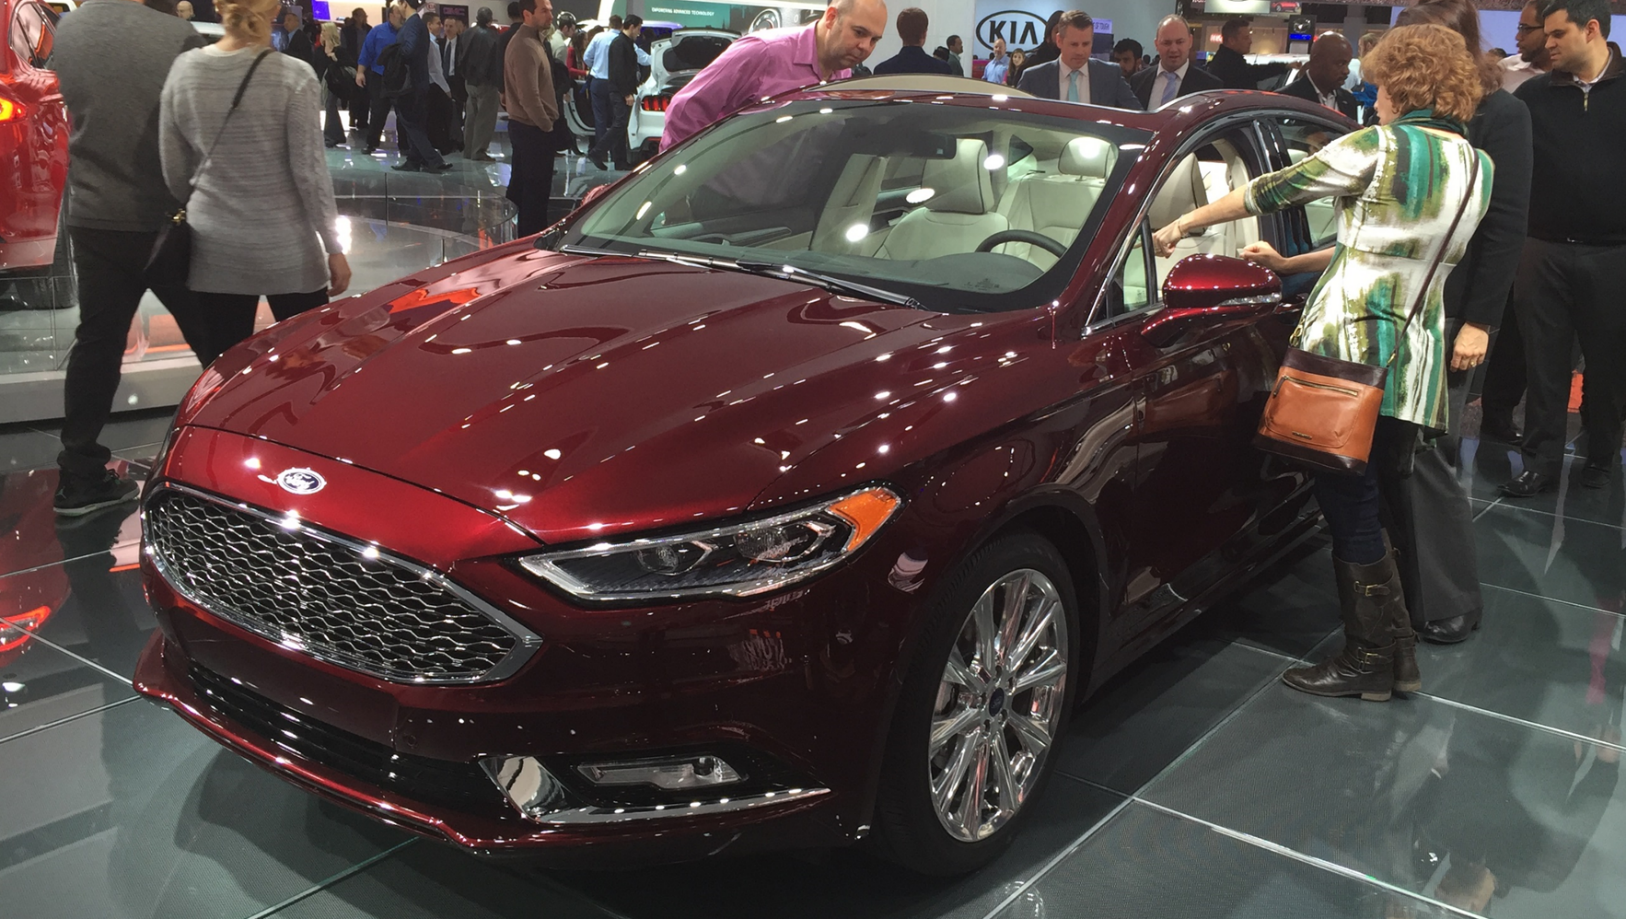 2016 Auto Show As It Impacts HMI Devices